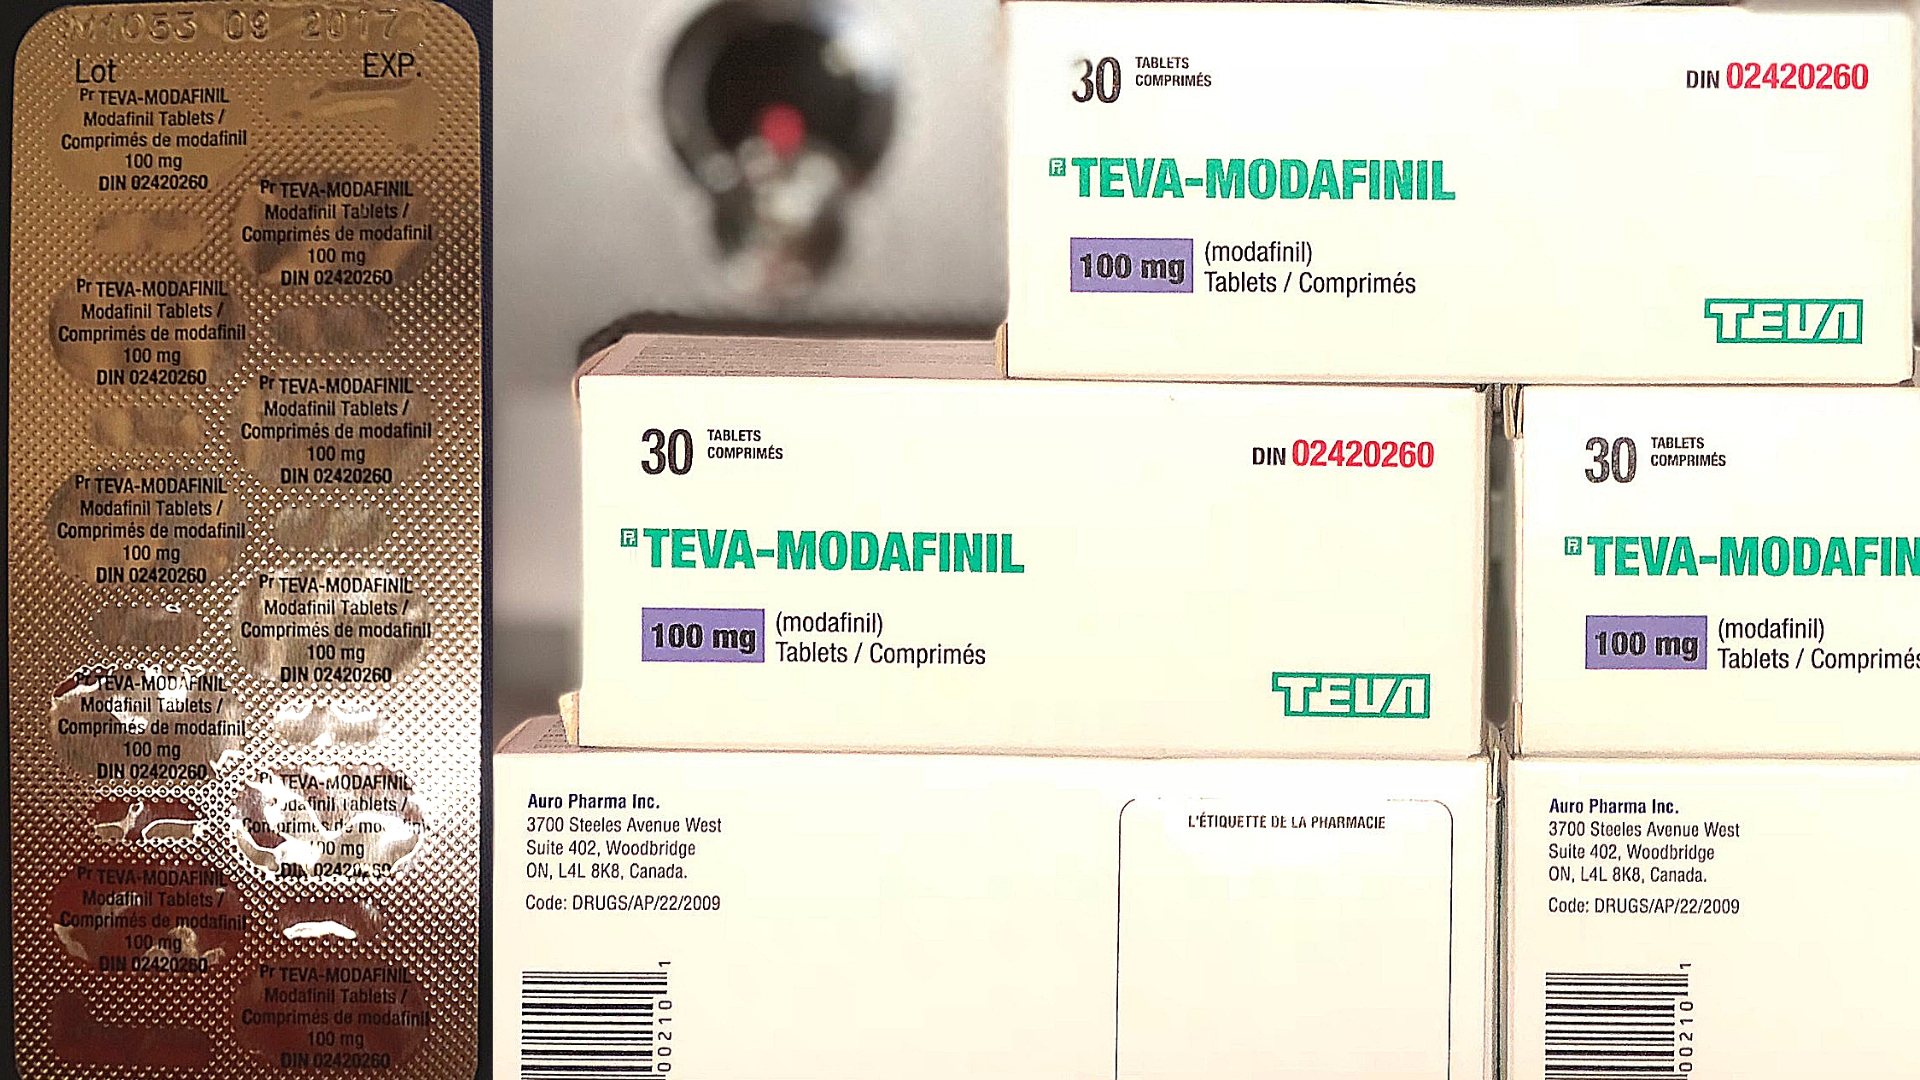 Blister Pack Of Modafinil and 5 Boxes Of Unopened Pharma Grade Modafinil